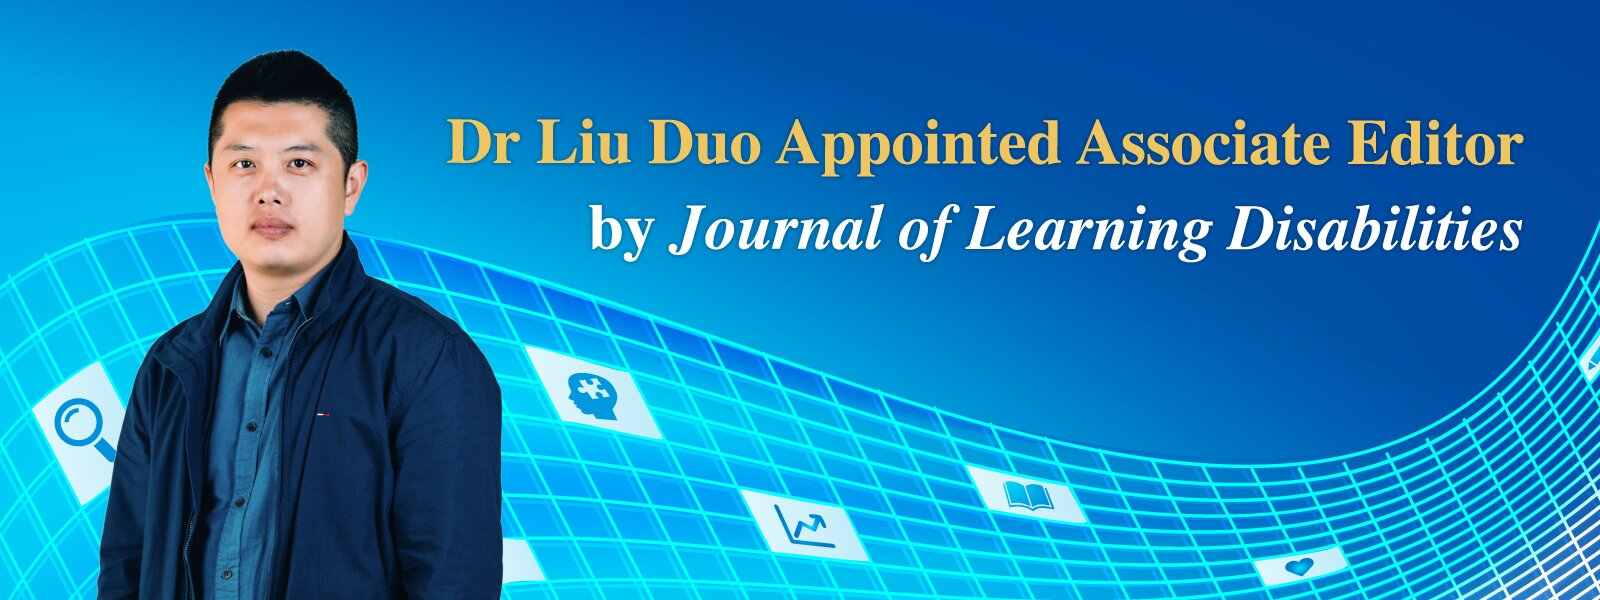 Dr Liu Duo Appointed Associate Editor by Journal of Learning Disabilities